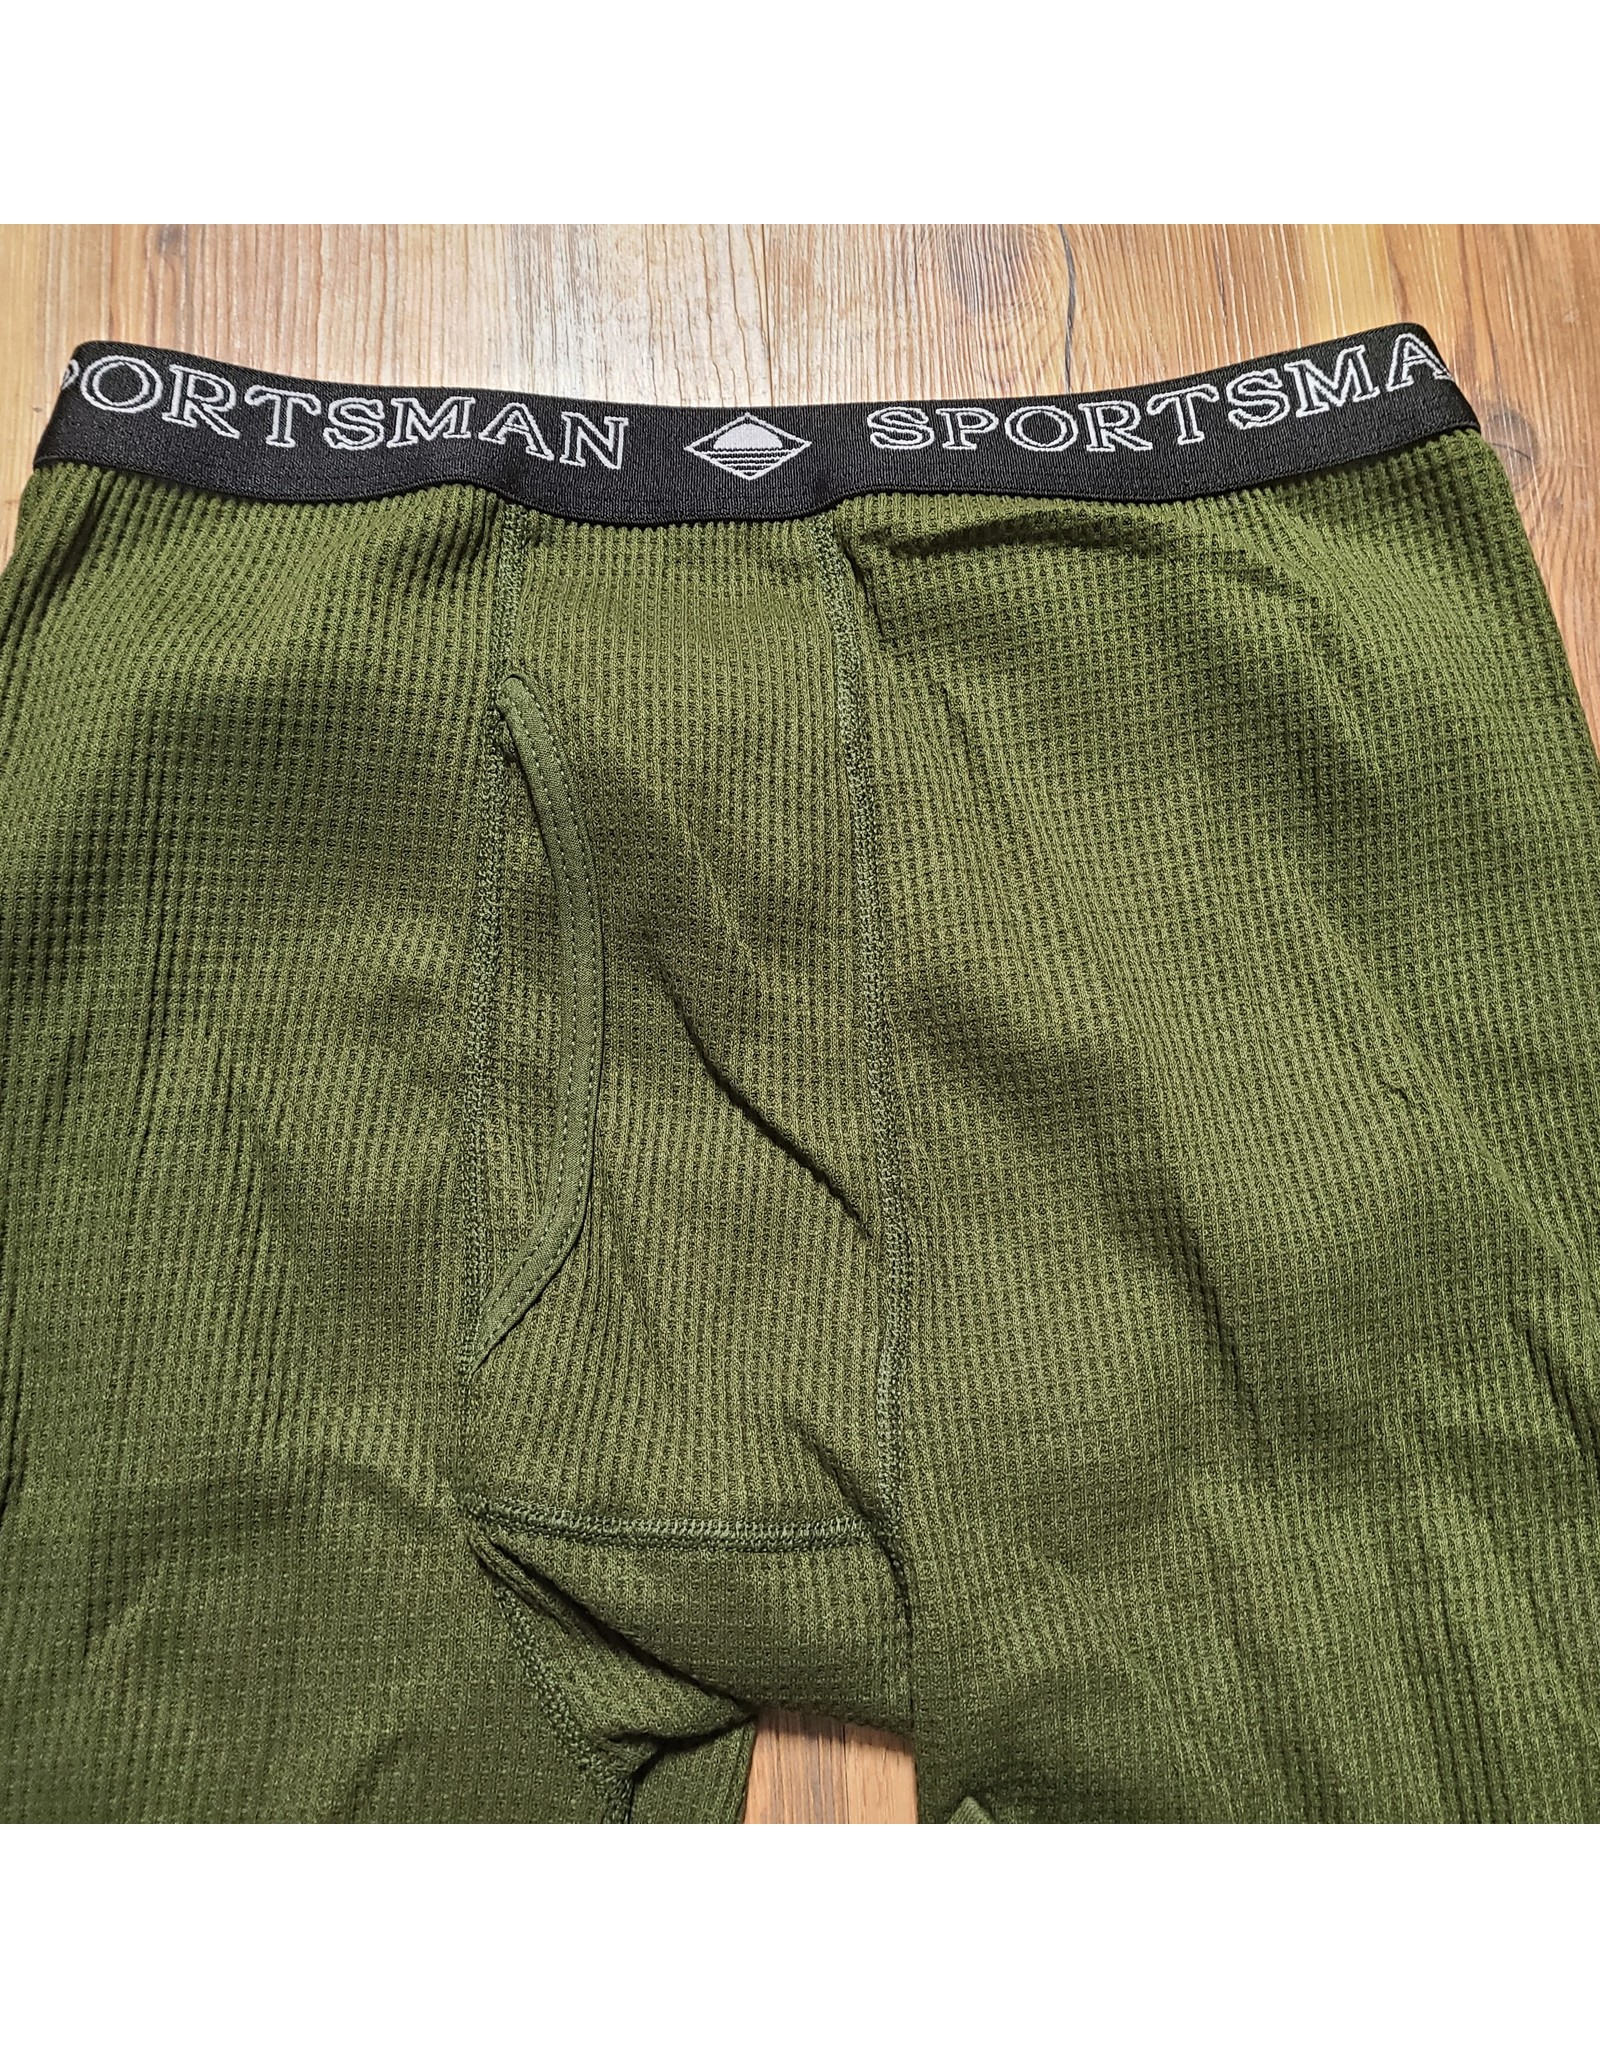 SGS SPORTSMAN THERMAL LONG JOHN BOTTOMS